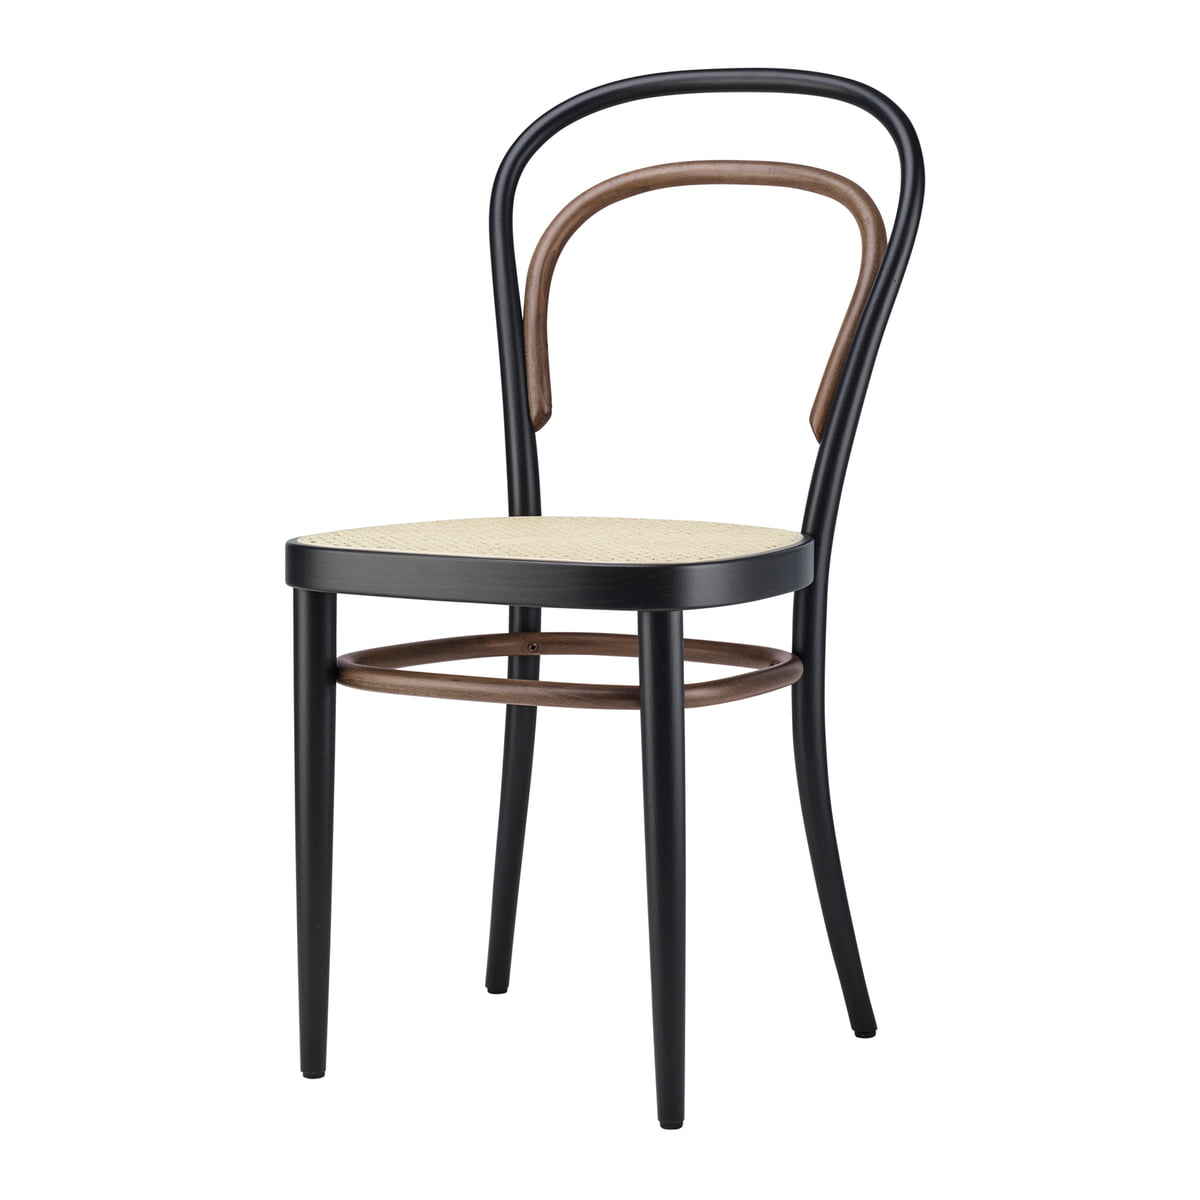 Pleasing Thonet 214 Bug Wood Chair Cane Weave With Plastic Support Fabric Beech Two Tone Black Special Edition Machost Co Dining Chair Design Ideas Machostcouk